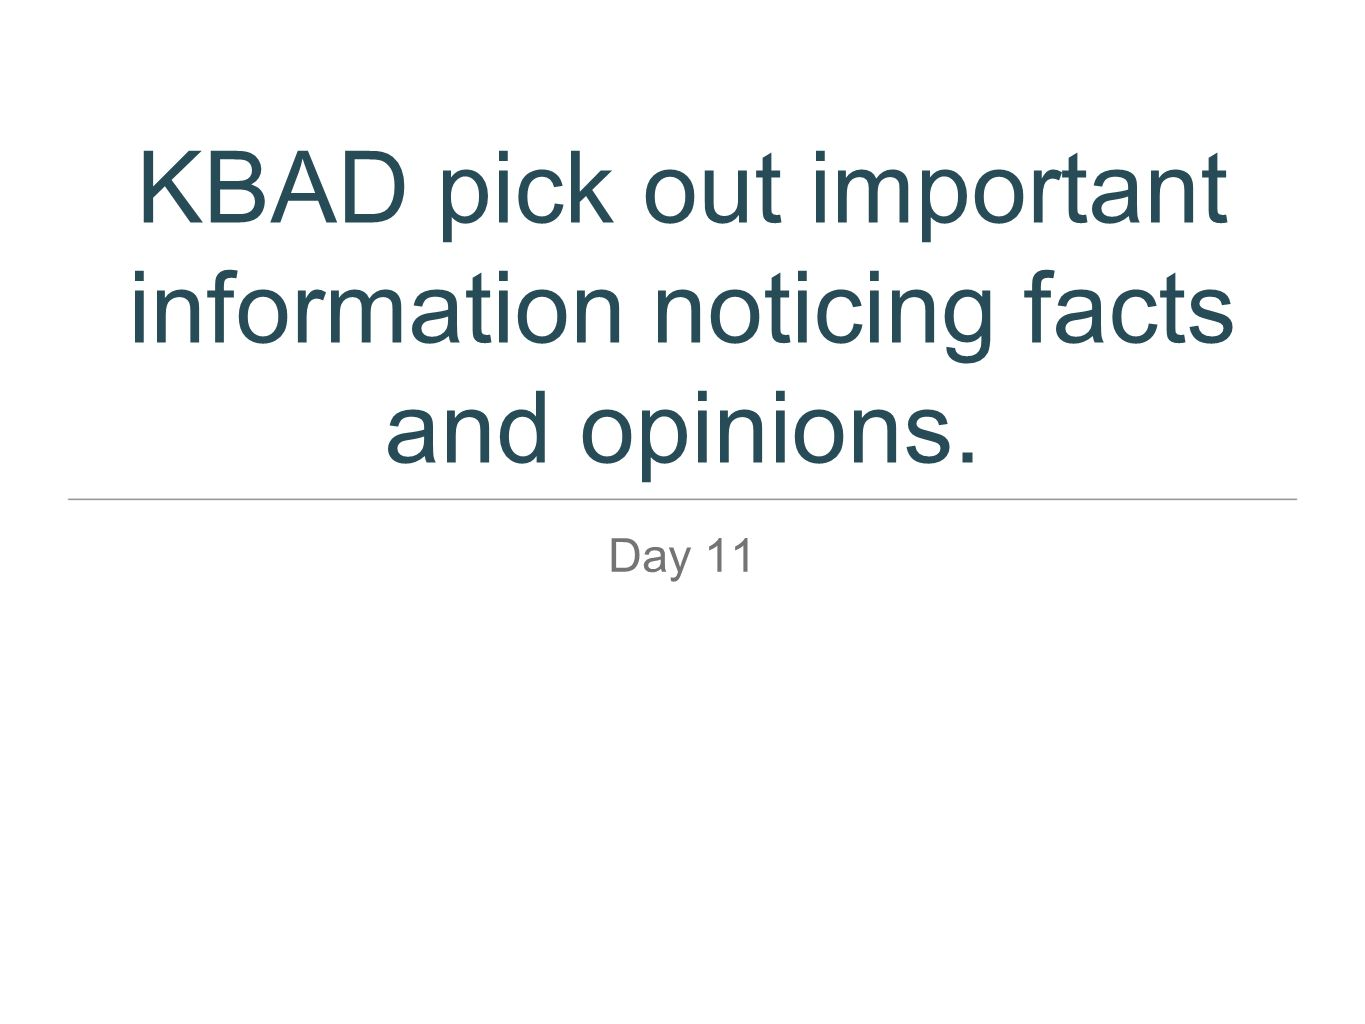 KBAD pick out important information noticing facts and opinions. Day 11